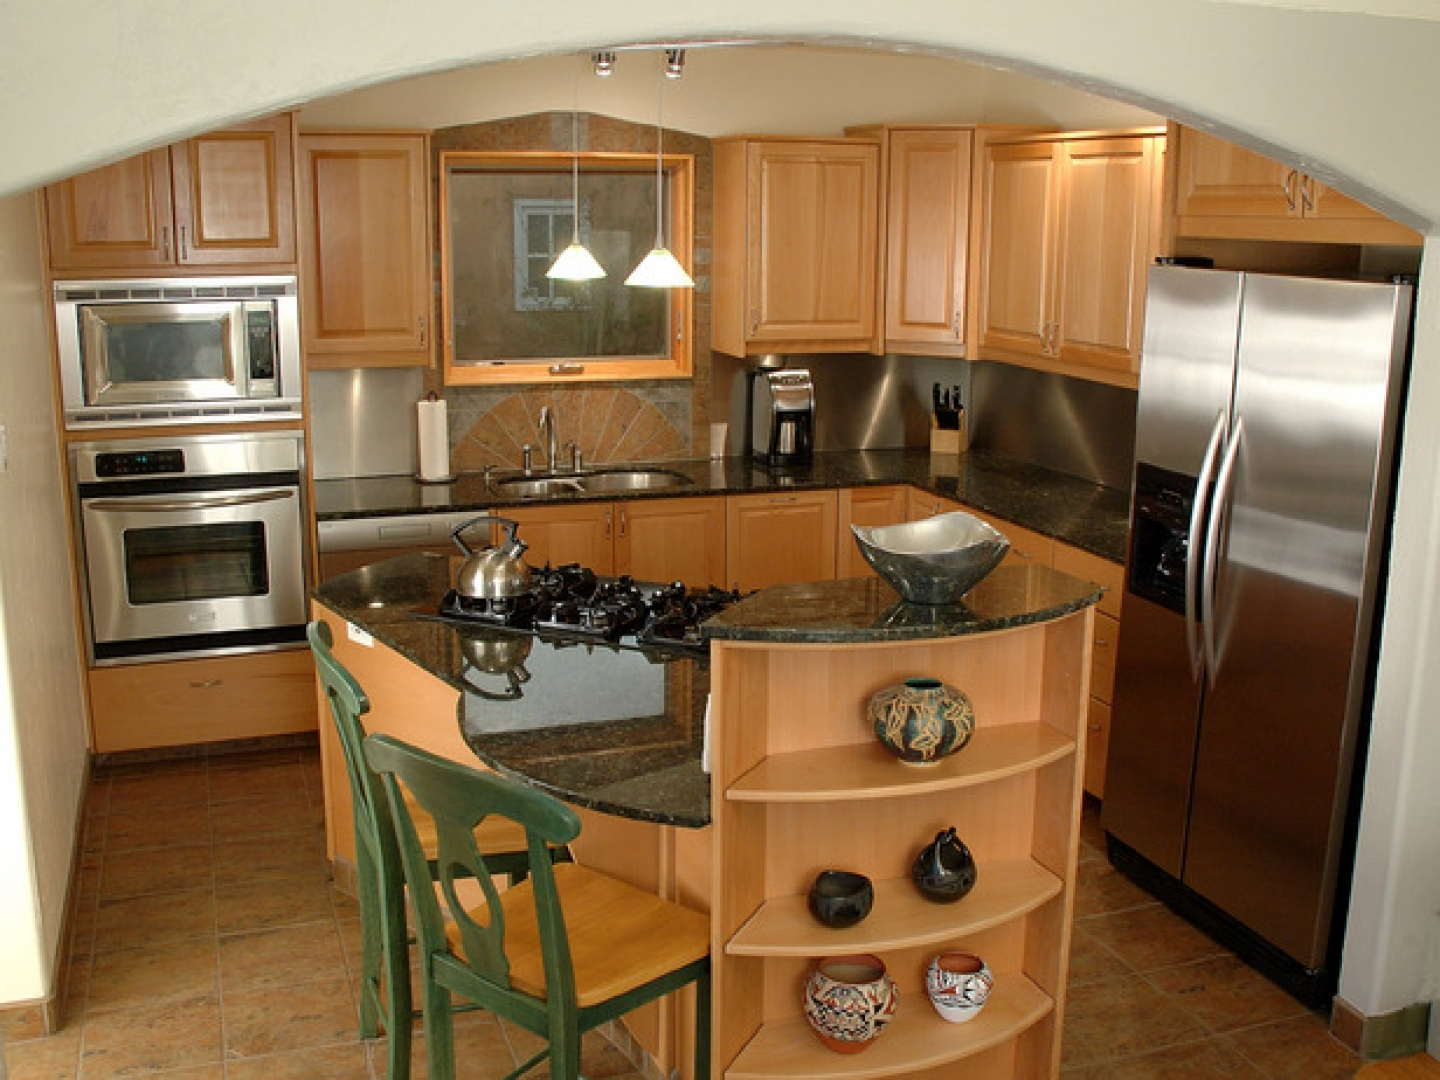 kitchen design ideas 2014 portable sink choose the traditional designs for your